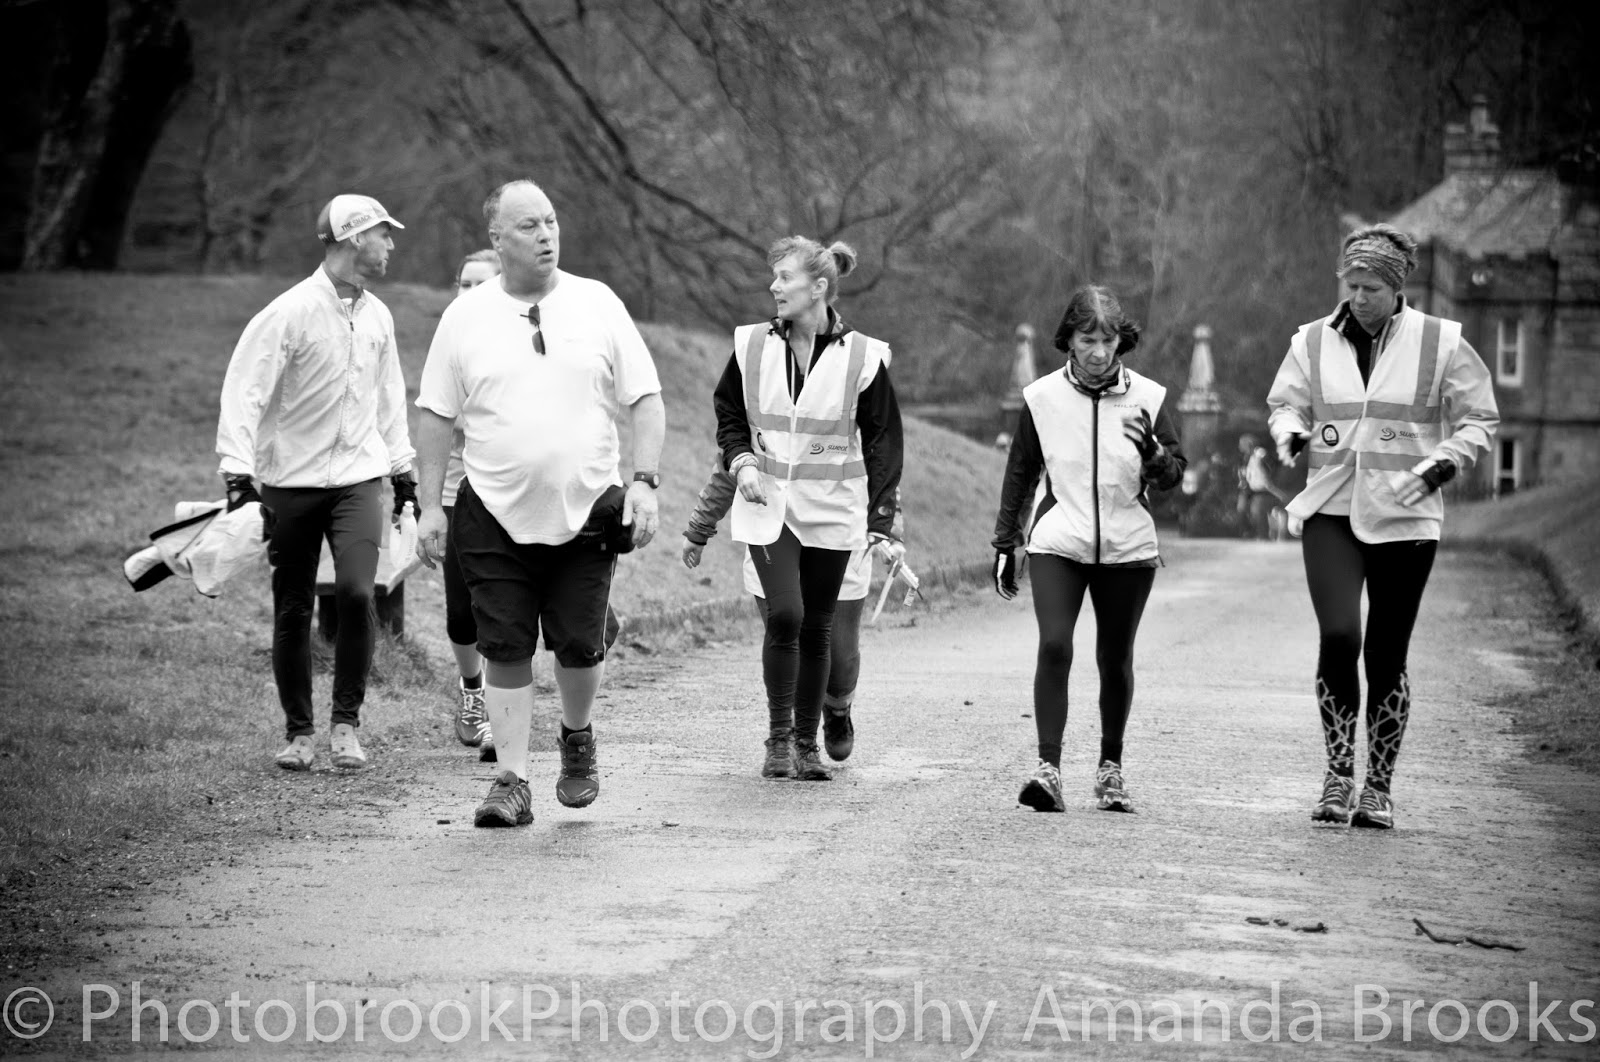 Volunteers and tail runners at Park Run